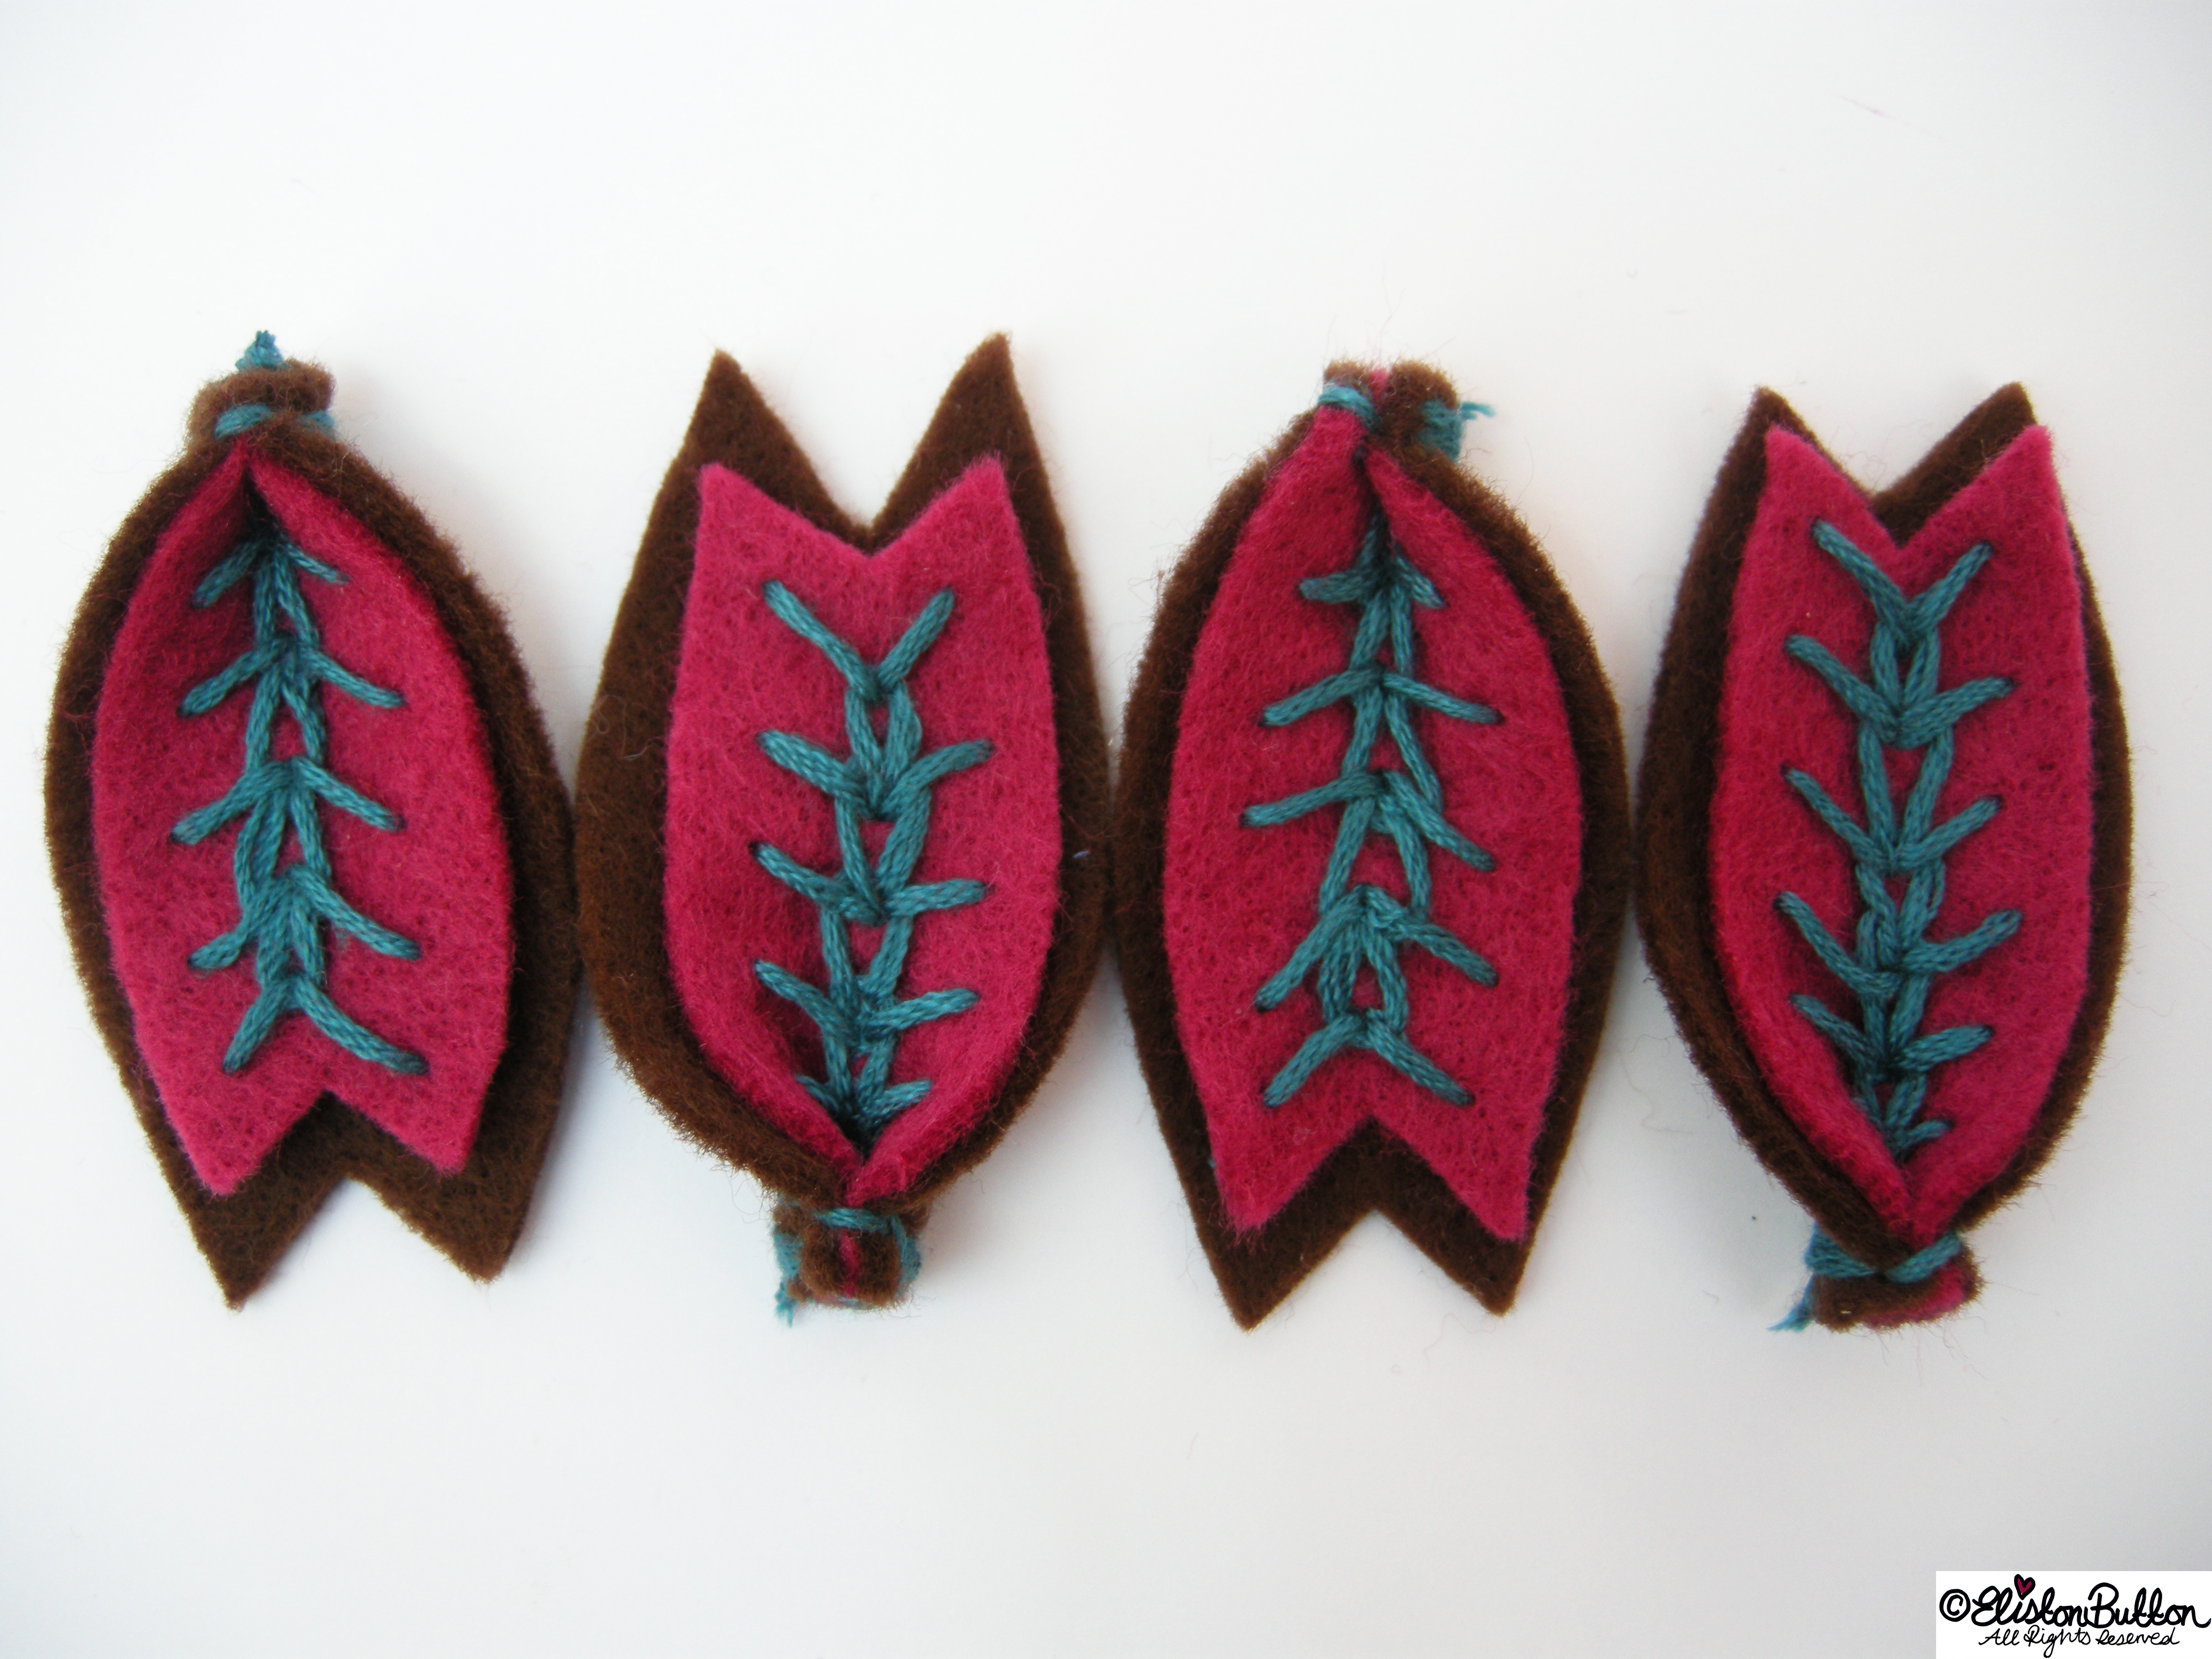 Wheat Ear Stitched Teal Petals - 27 Before 27 - Raspberry and Chocolate at www.elistonbutton.com - Eliston Button - That Crafty Kid – Art, Design, Craft & Adventure.